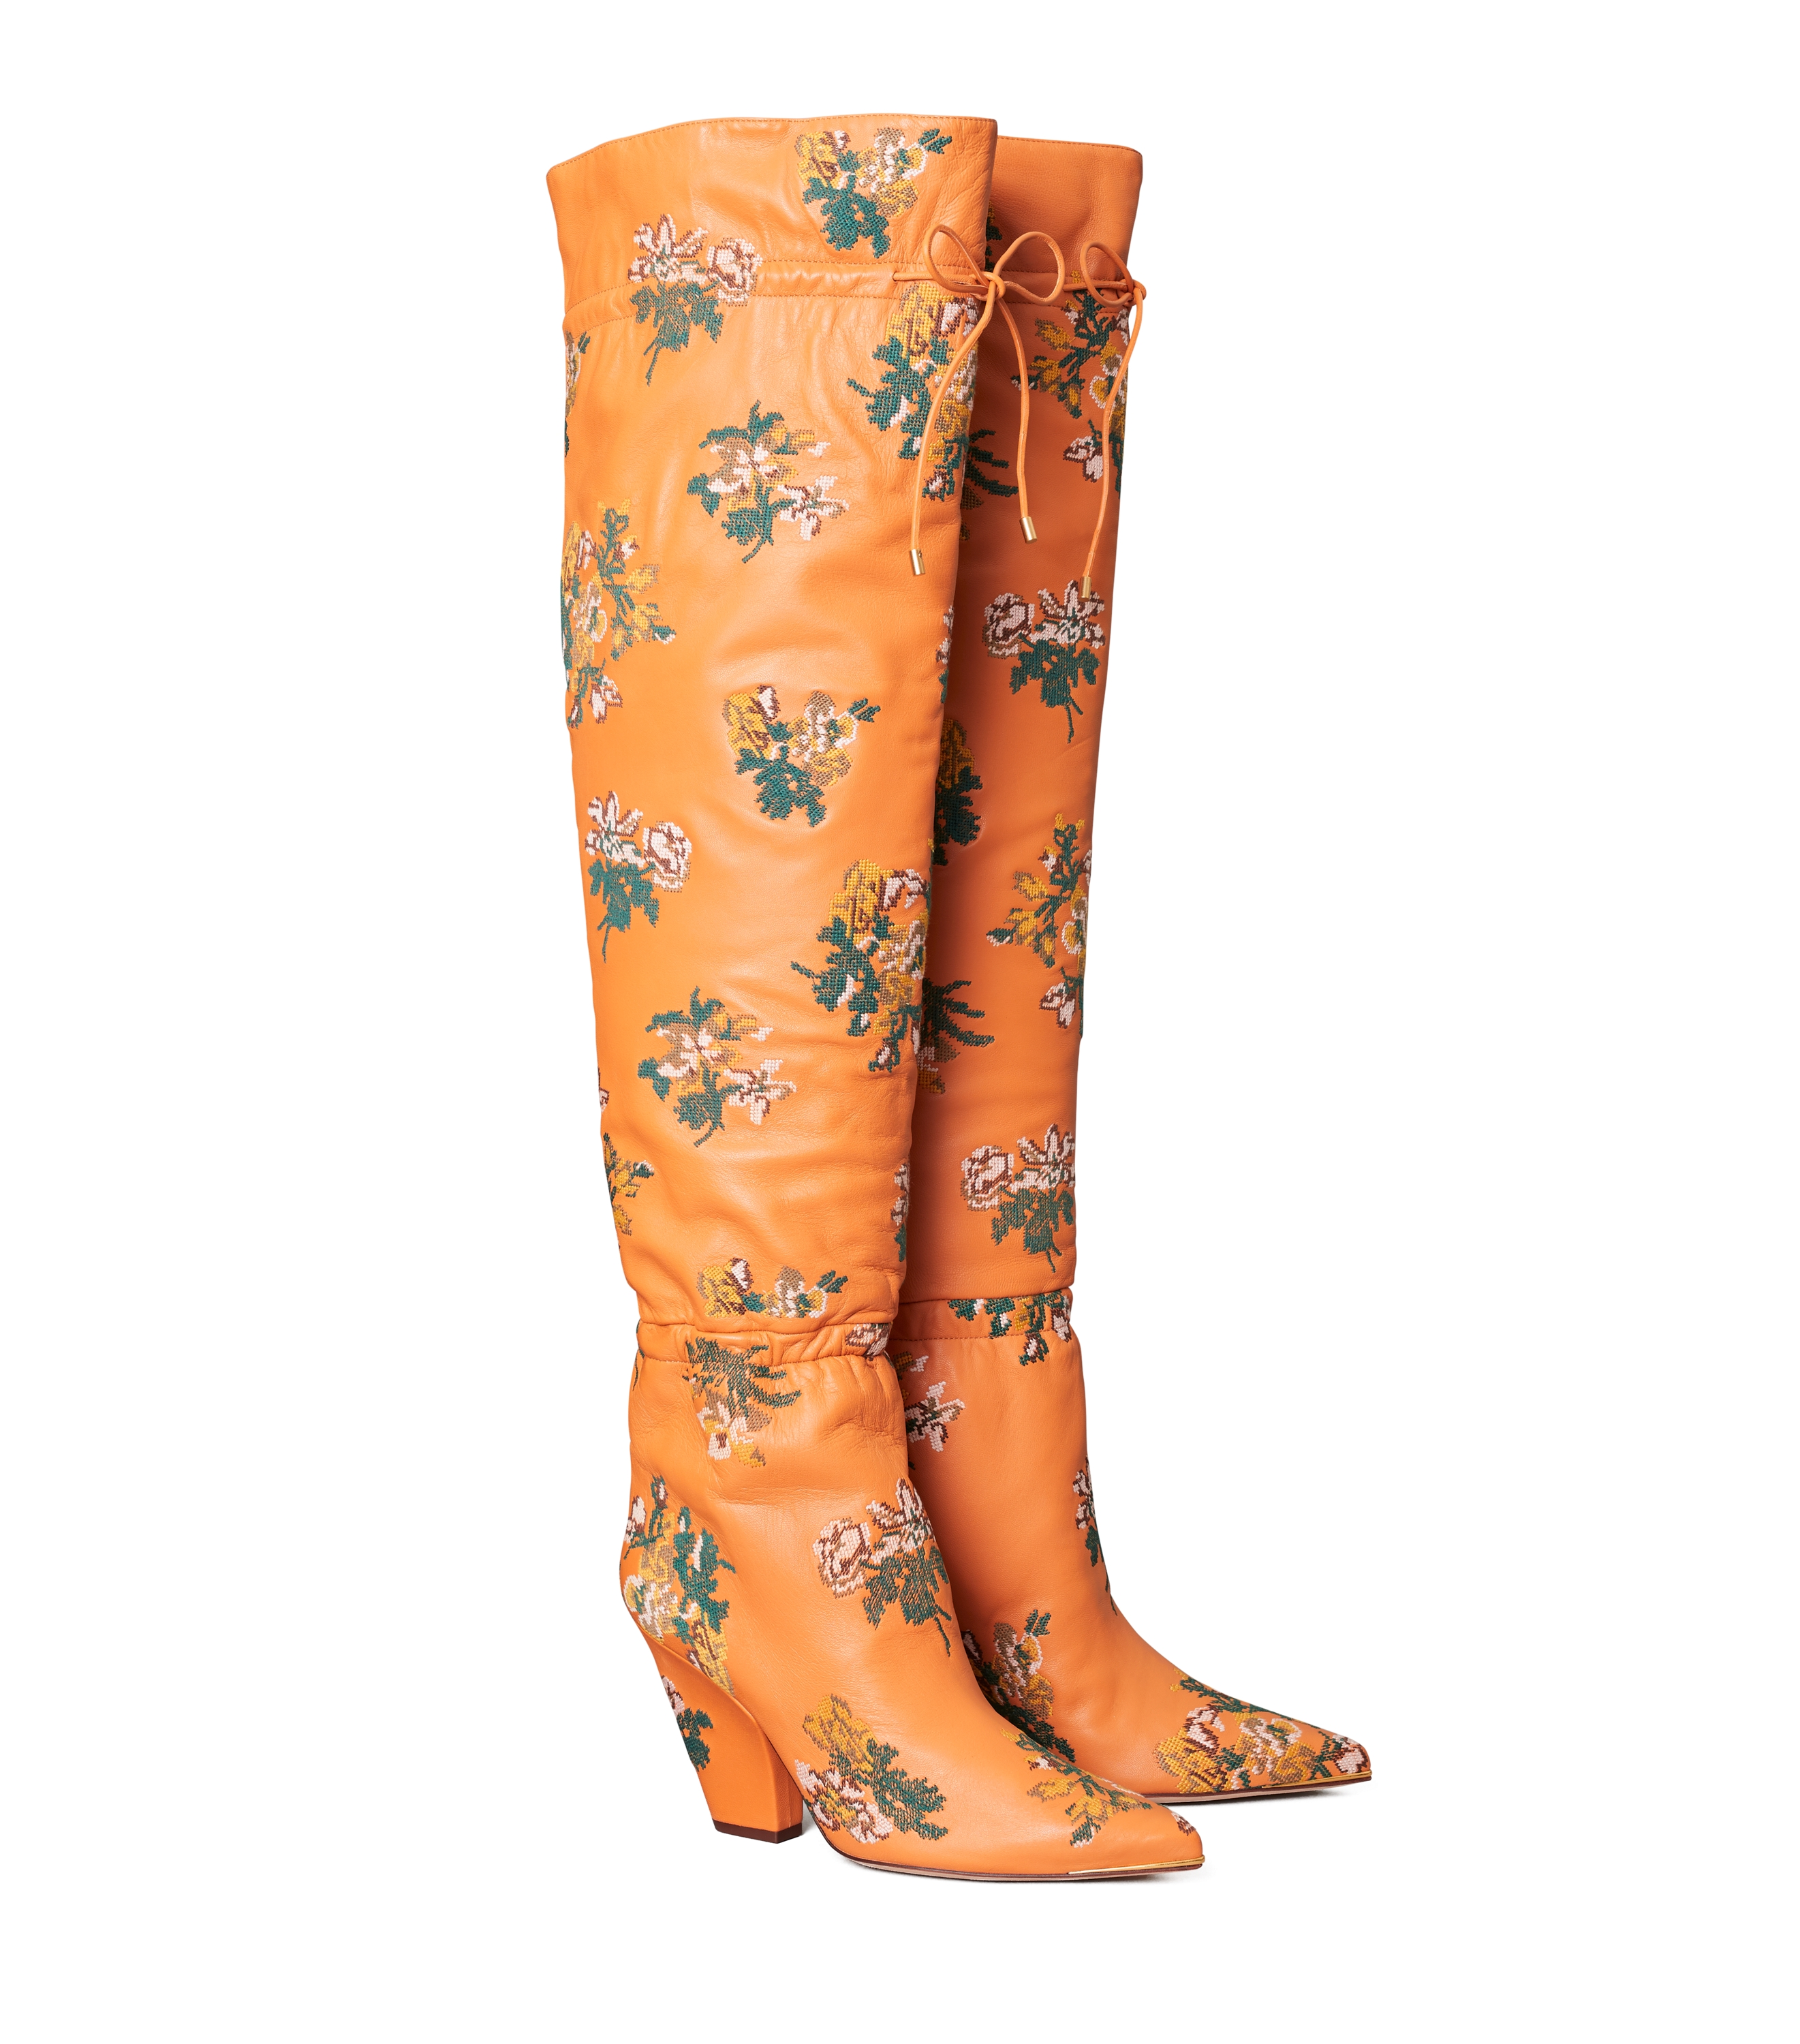 Tory Burch LILA EMBROIDERED OVER-THE-KNEE SCRUNCH BOOT LILA